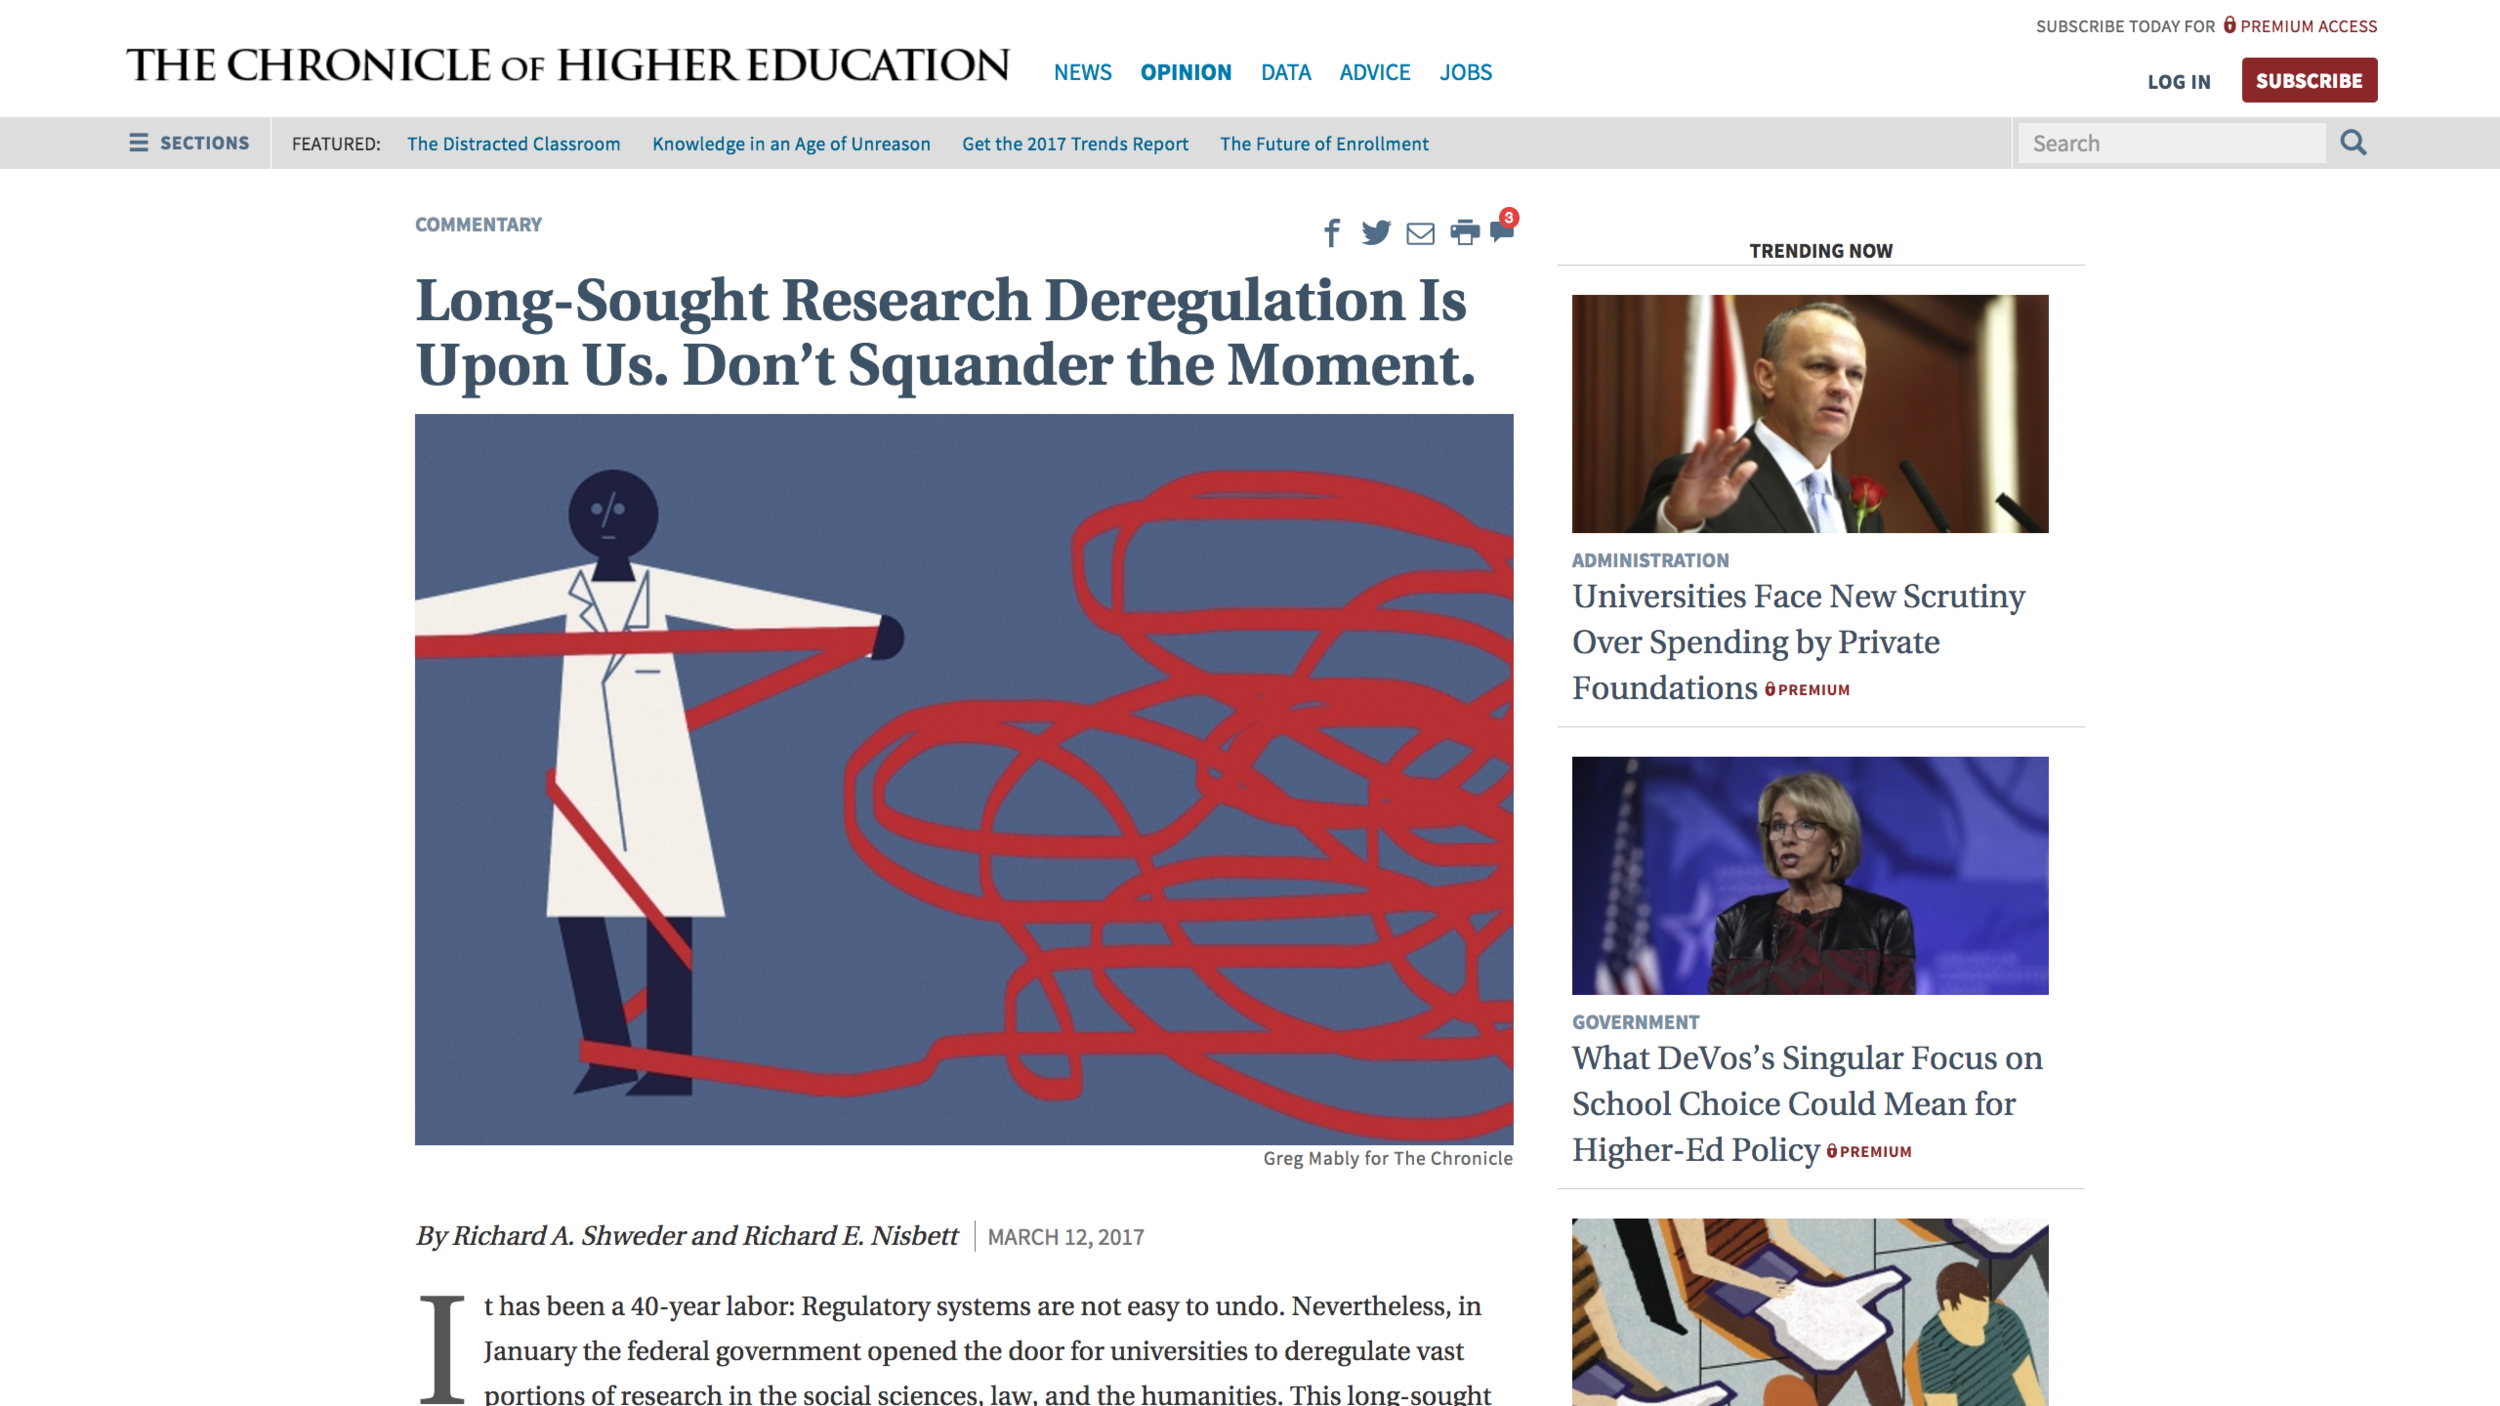 """Link to the March 12, 2017 Chronicle of Higher Education Article """" Long-Sought Research Deregulation Is Upon Us. Don't Squander the Moment."""" by Richard Shweder and Richard Nisbett"""